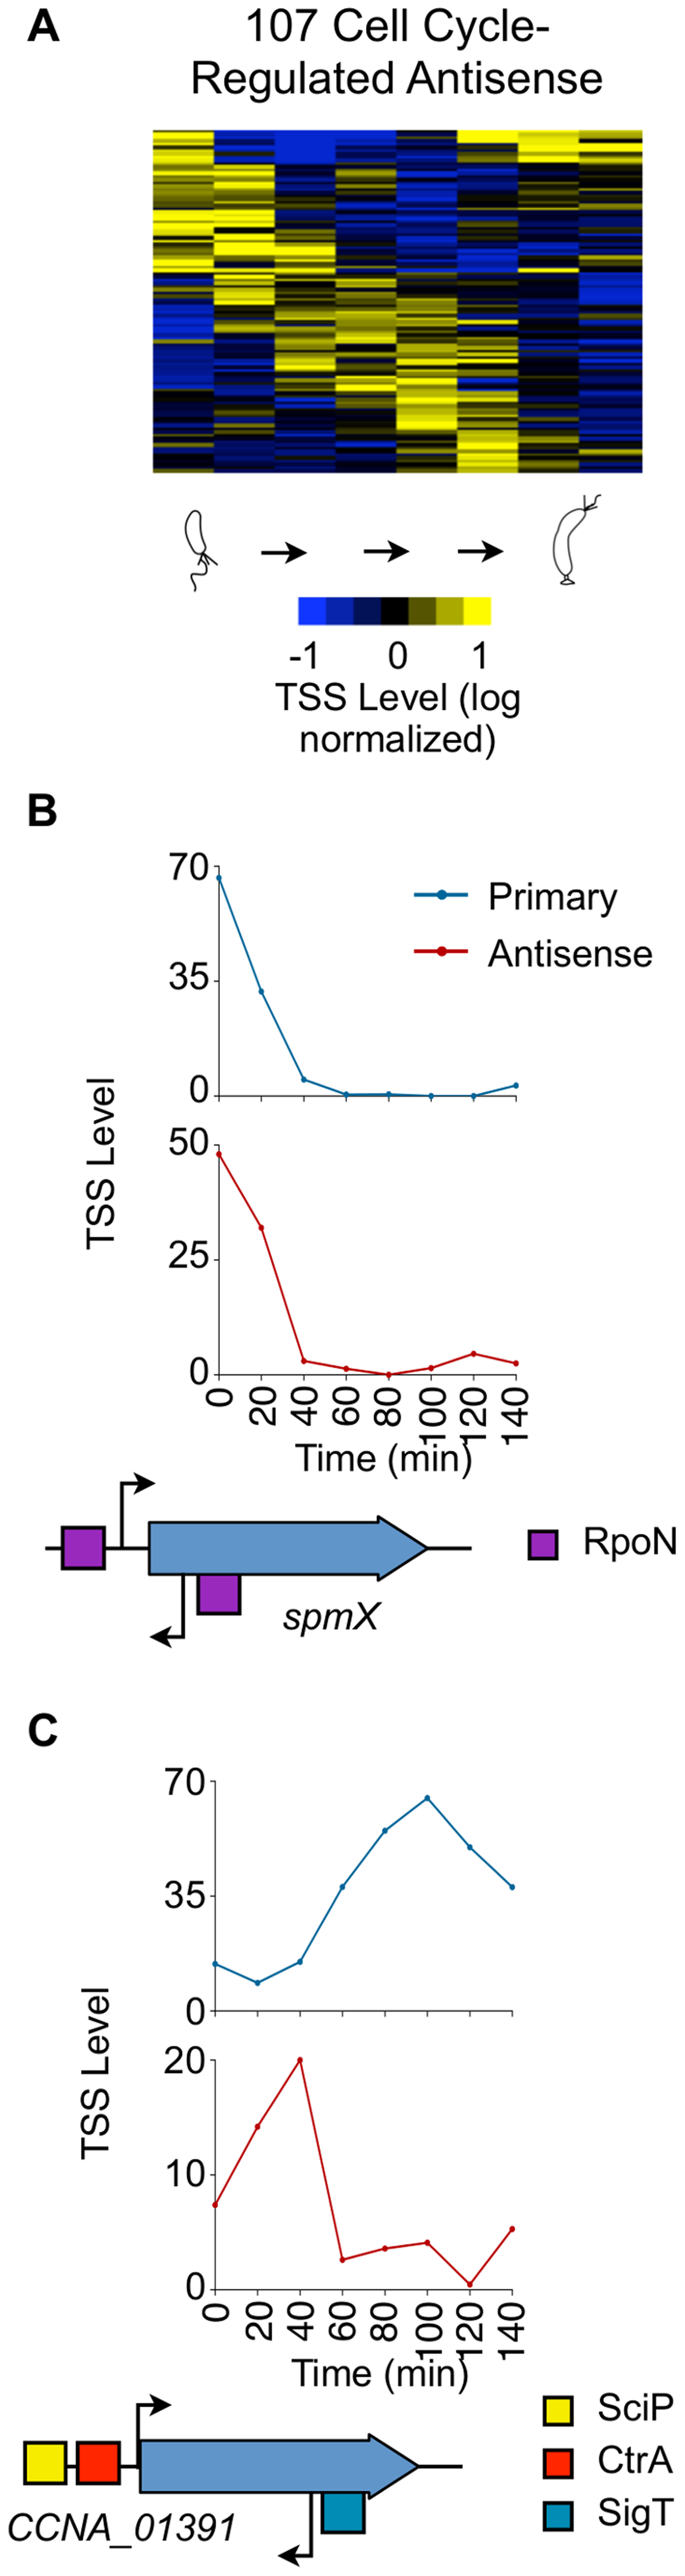 Cell cycle-regulated antisense TSSs.